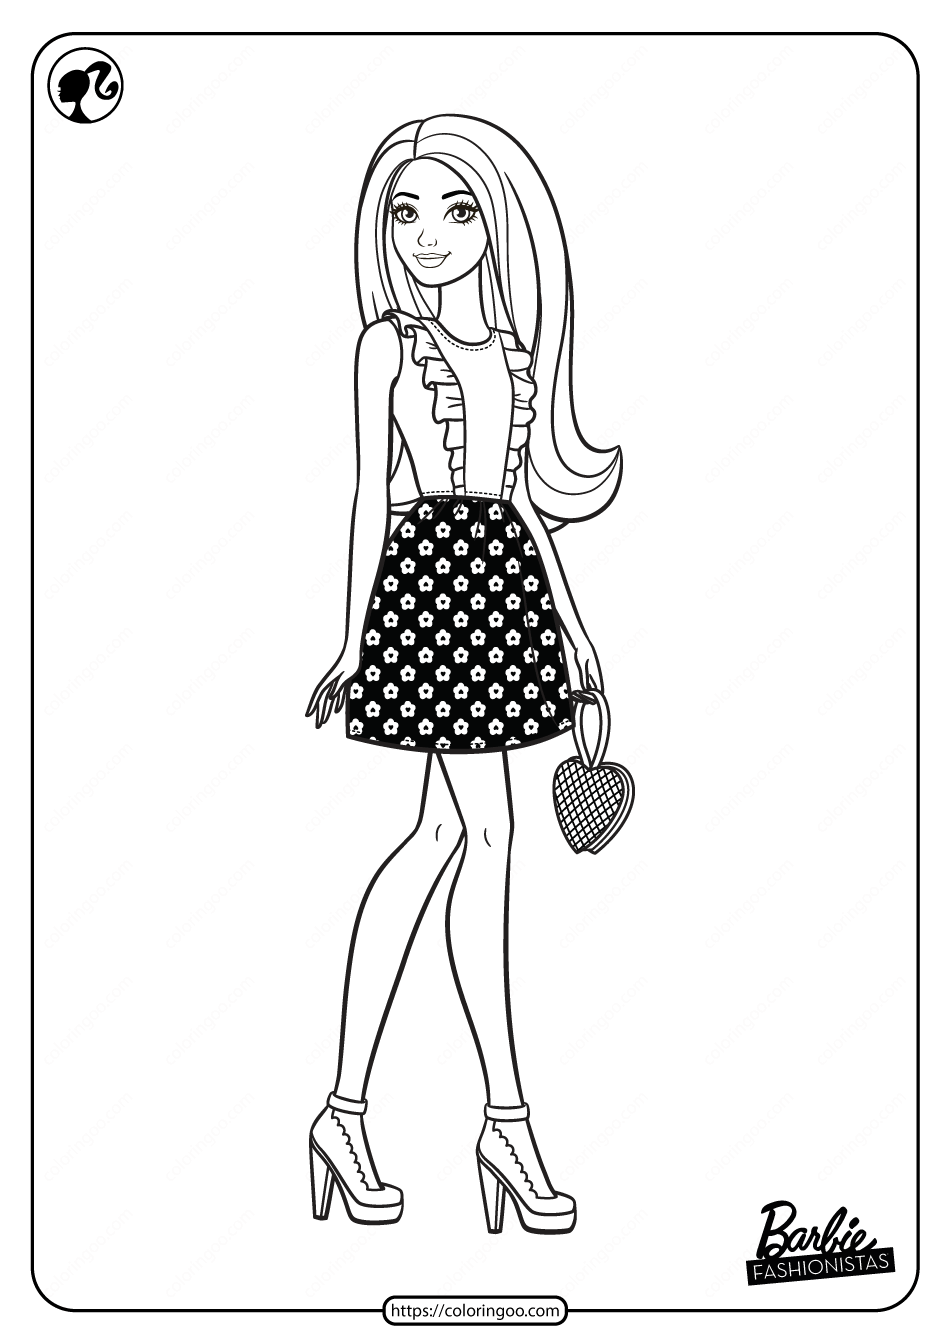 Printable Barbie Fashionistas Pdf Coloring Pages 02 In 2021 Coloring Pages Barbie Coloring Barbie